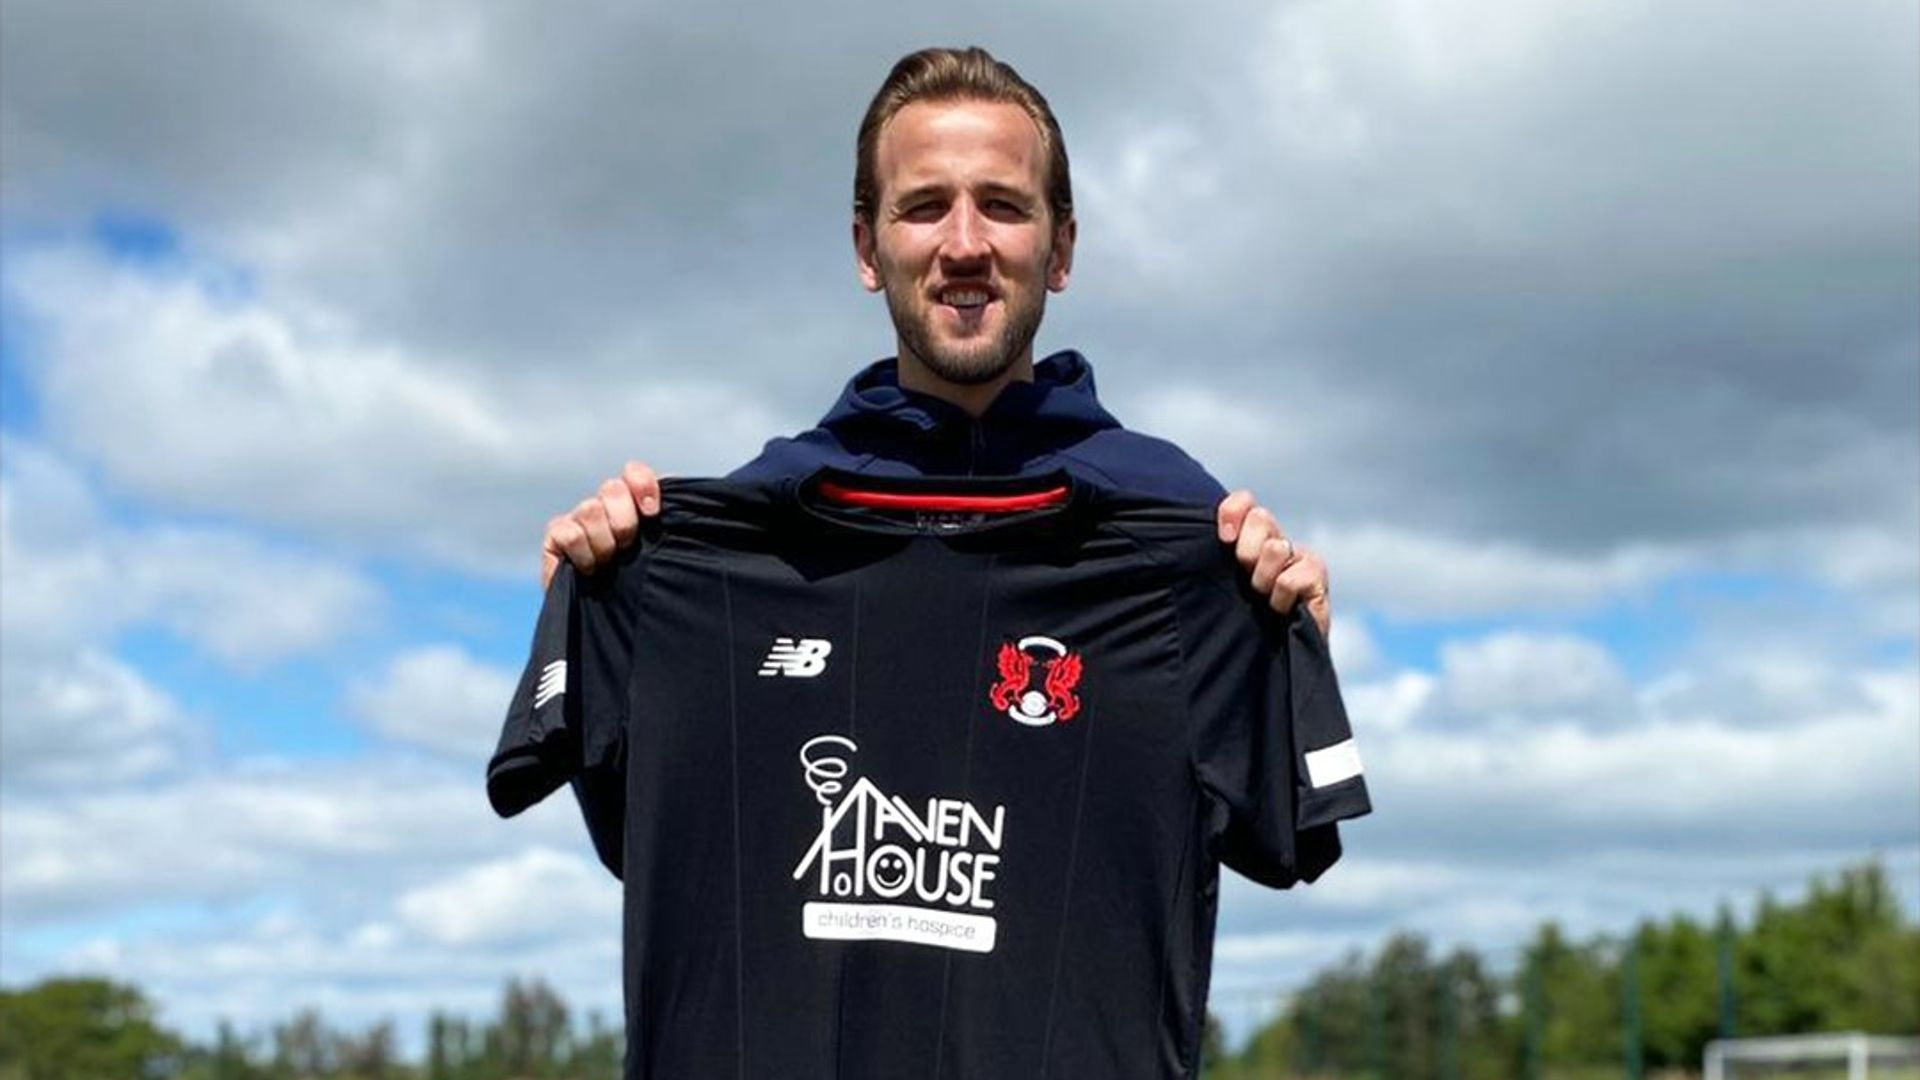 Kane delighted by worldwide Orient shirt sales